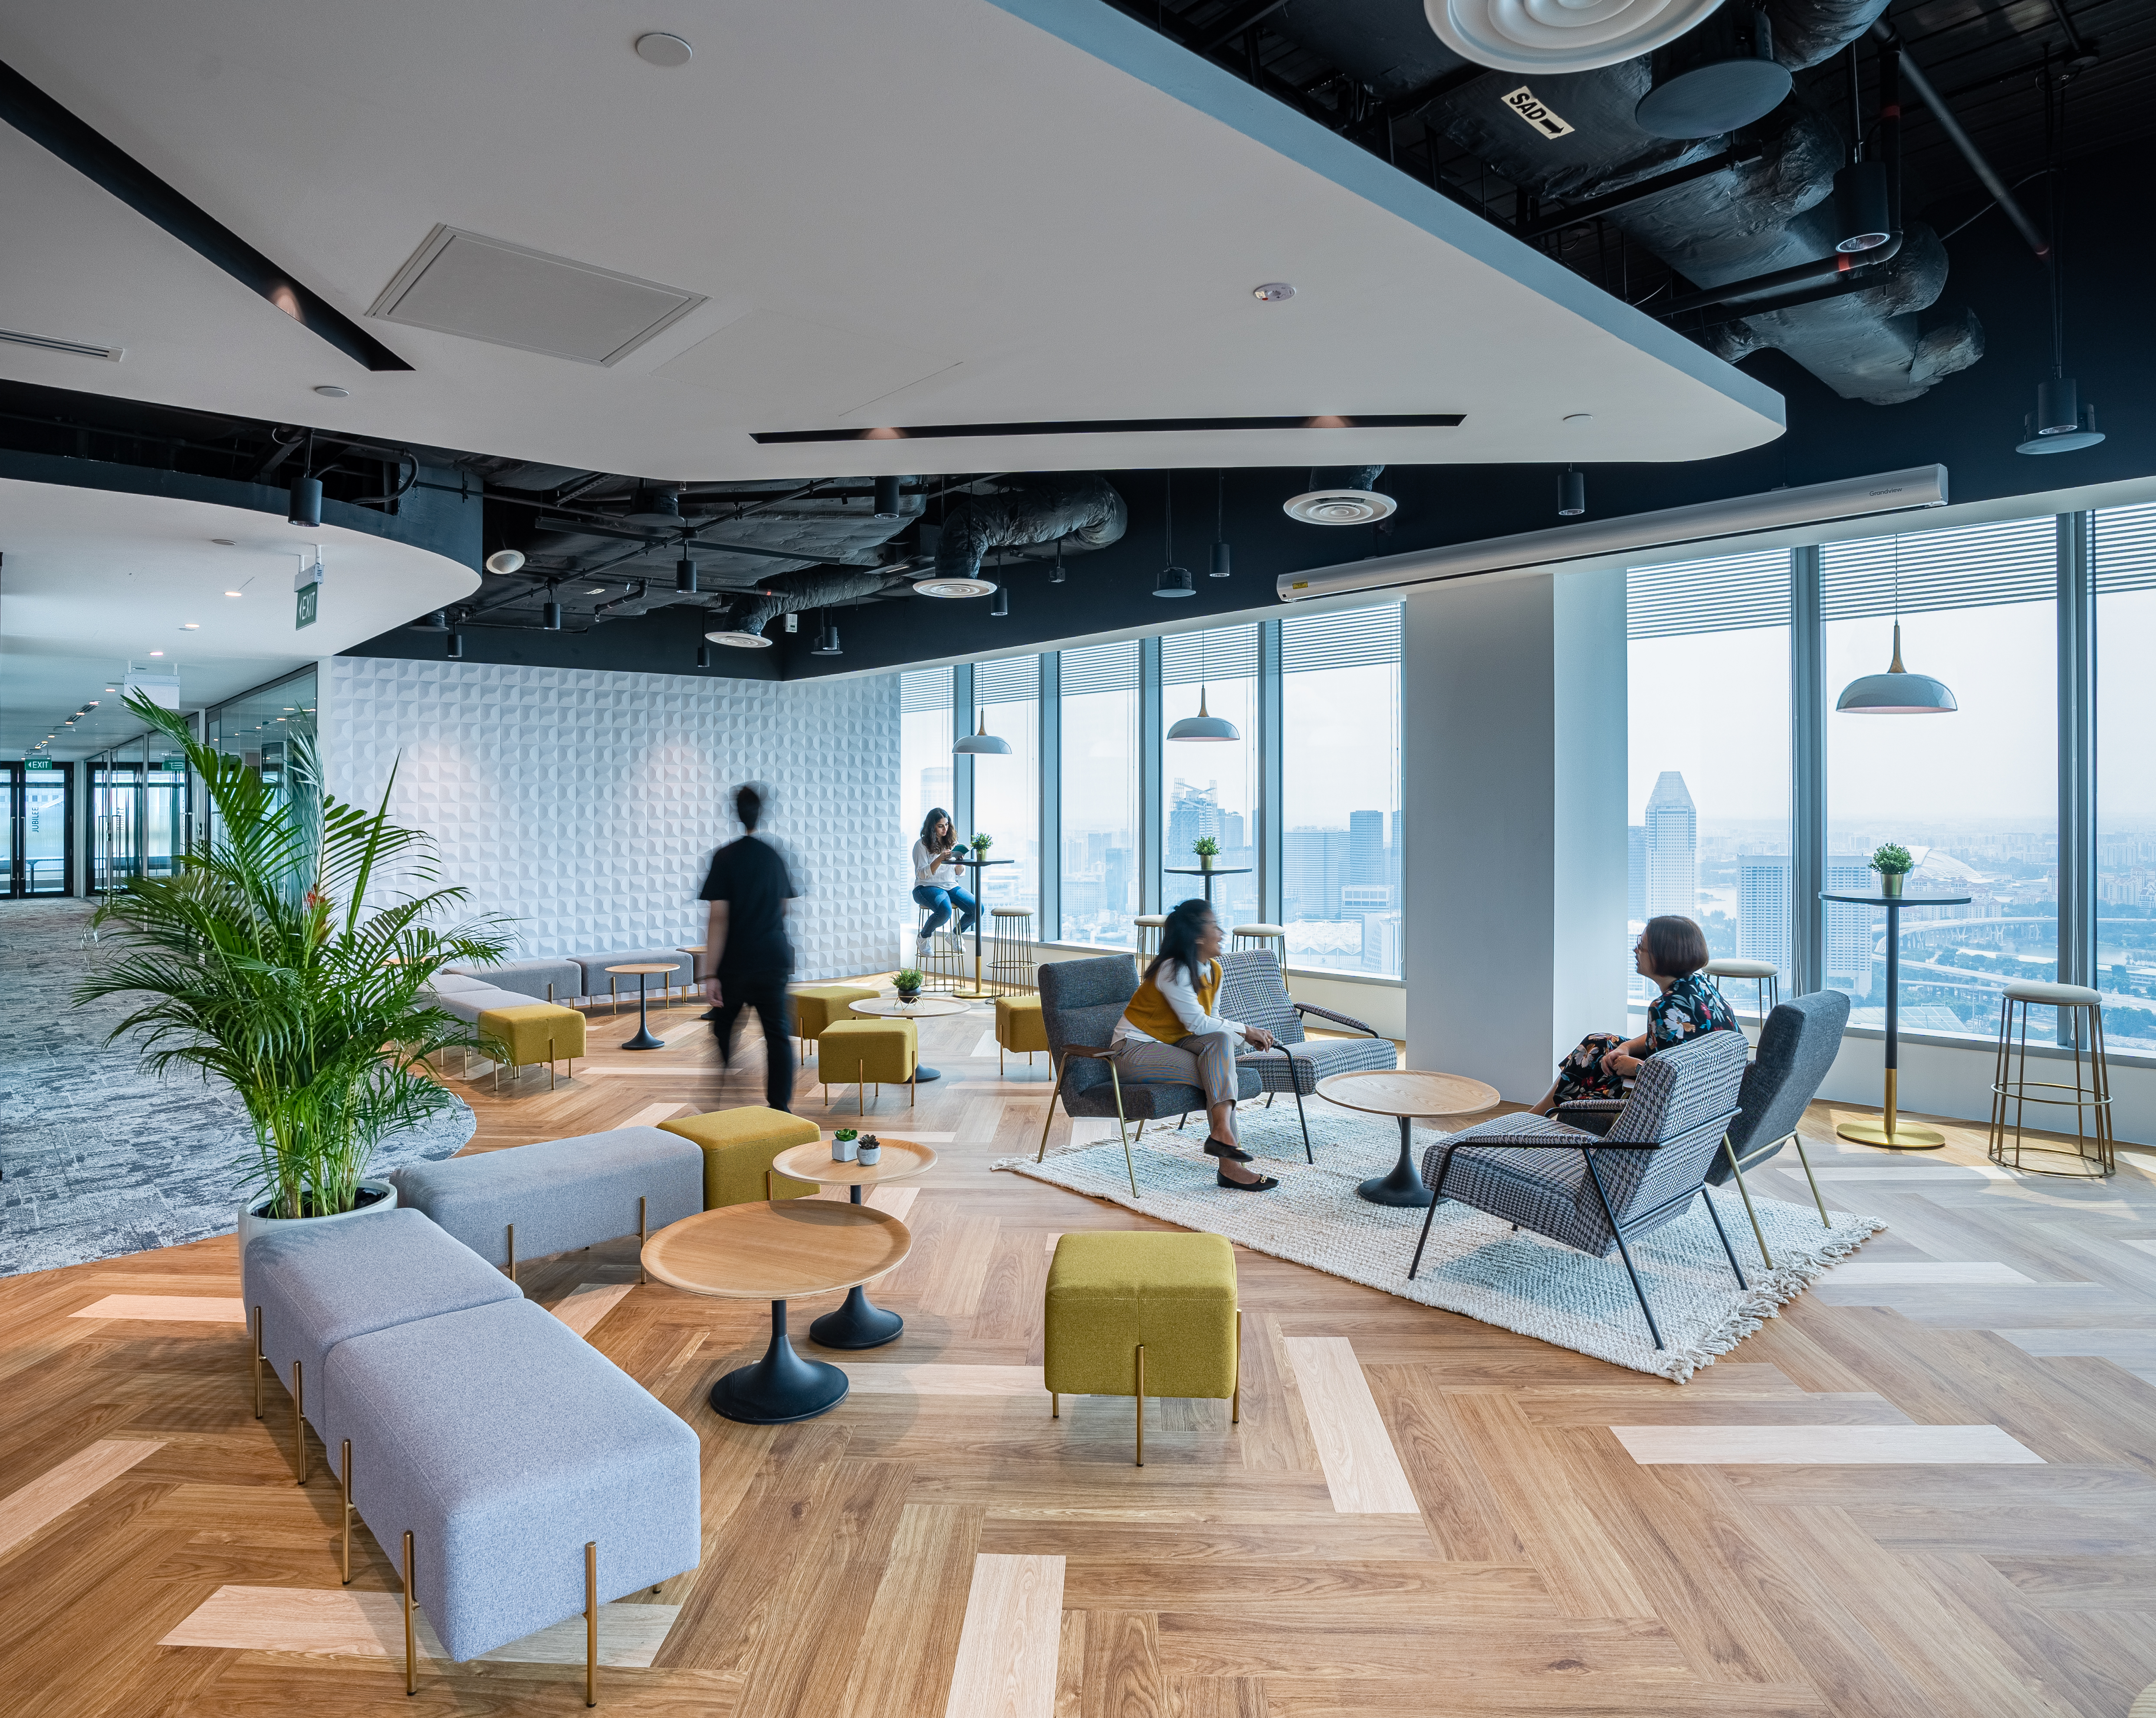 A hospitality-inspired design enabled us to create a space where employee can unwind and relax